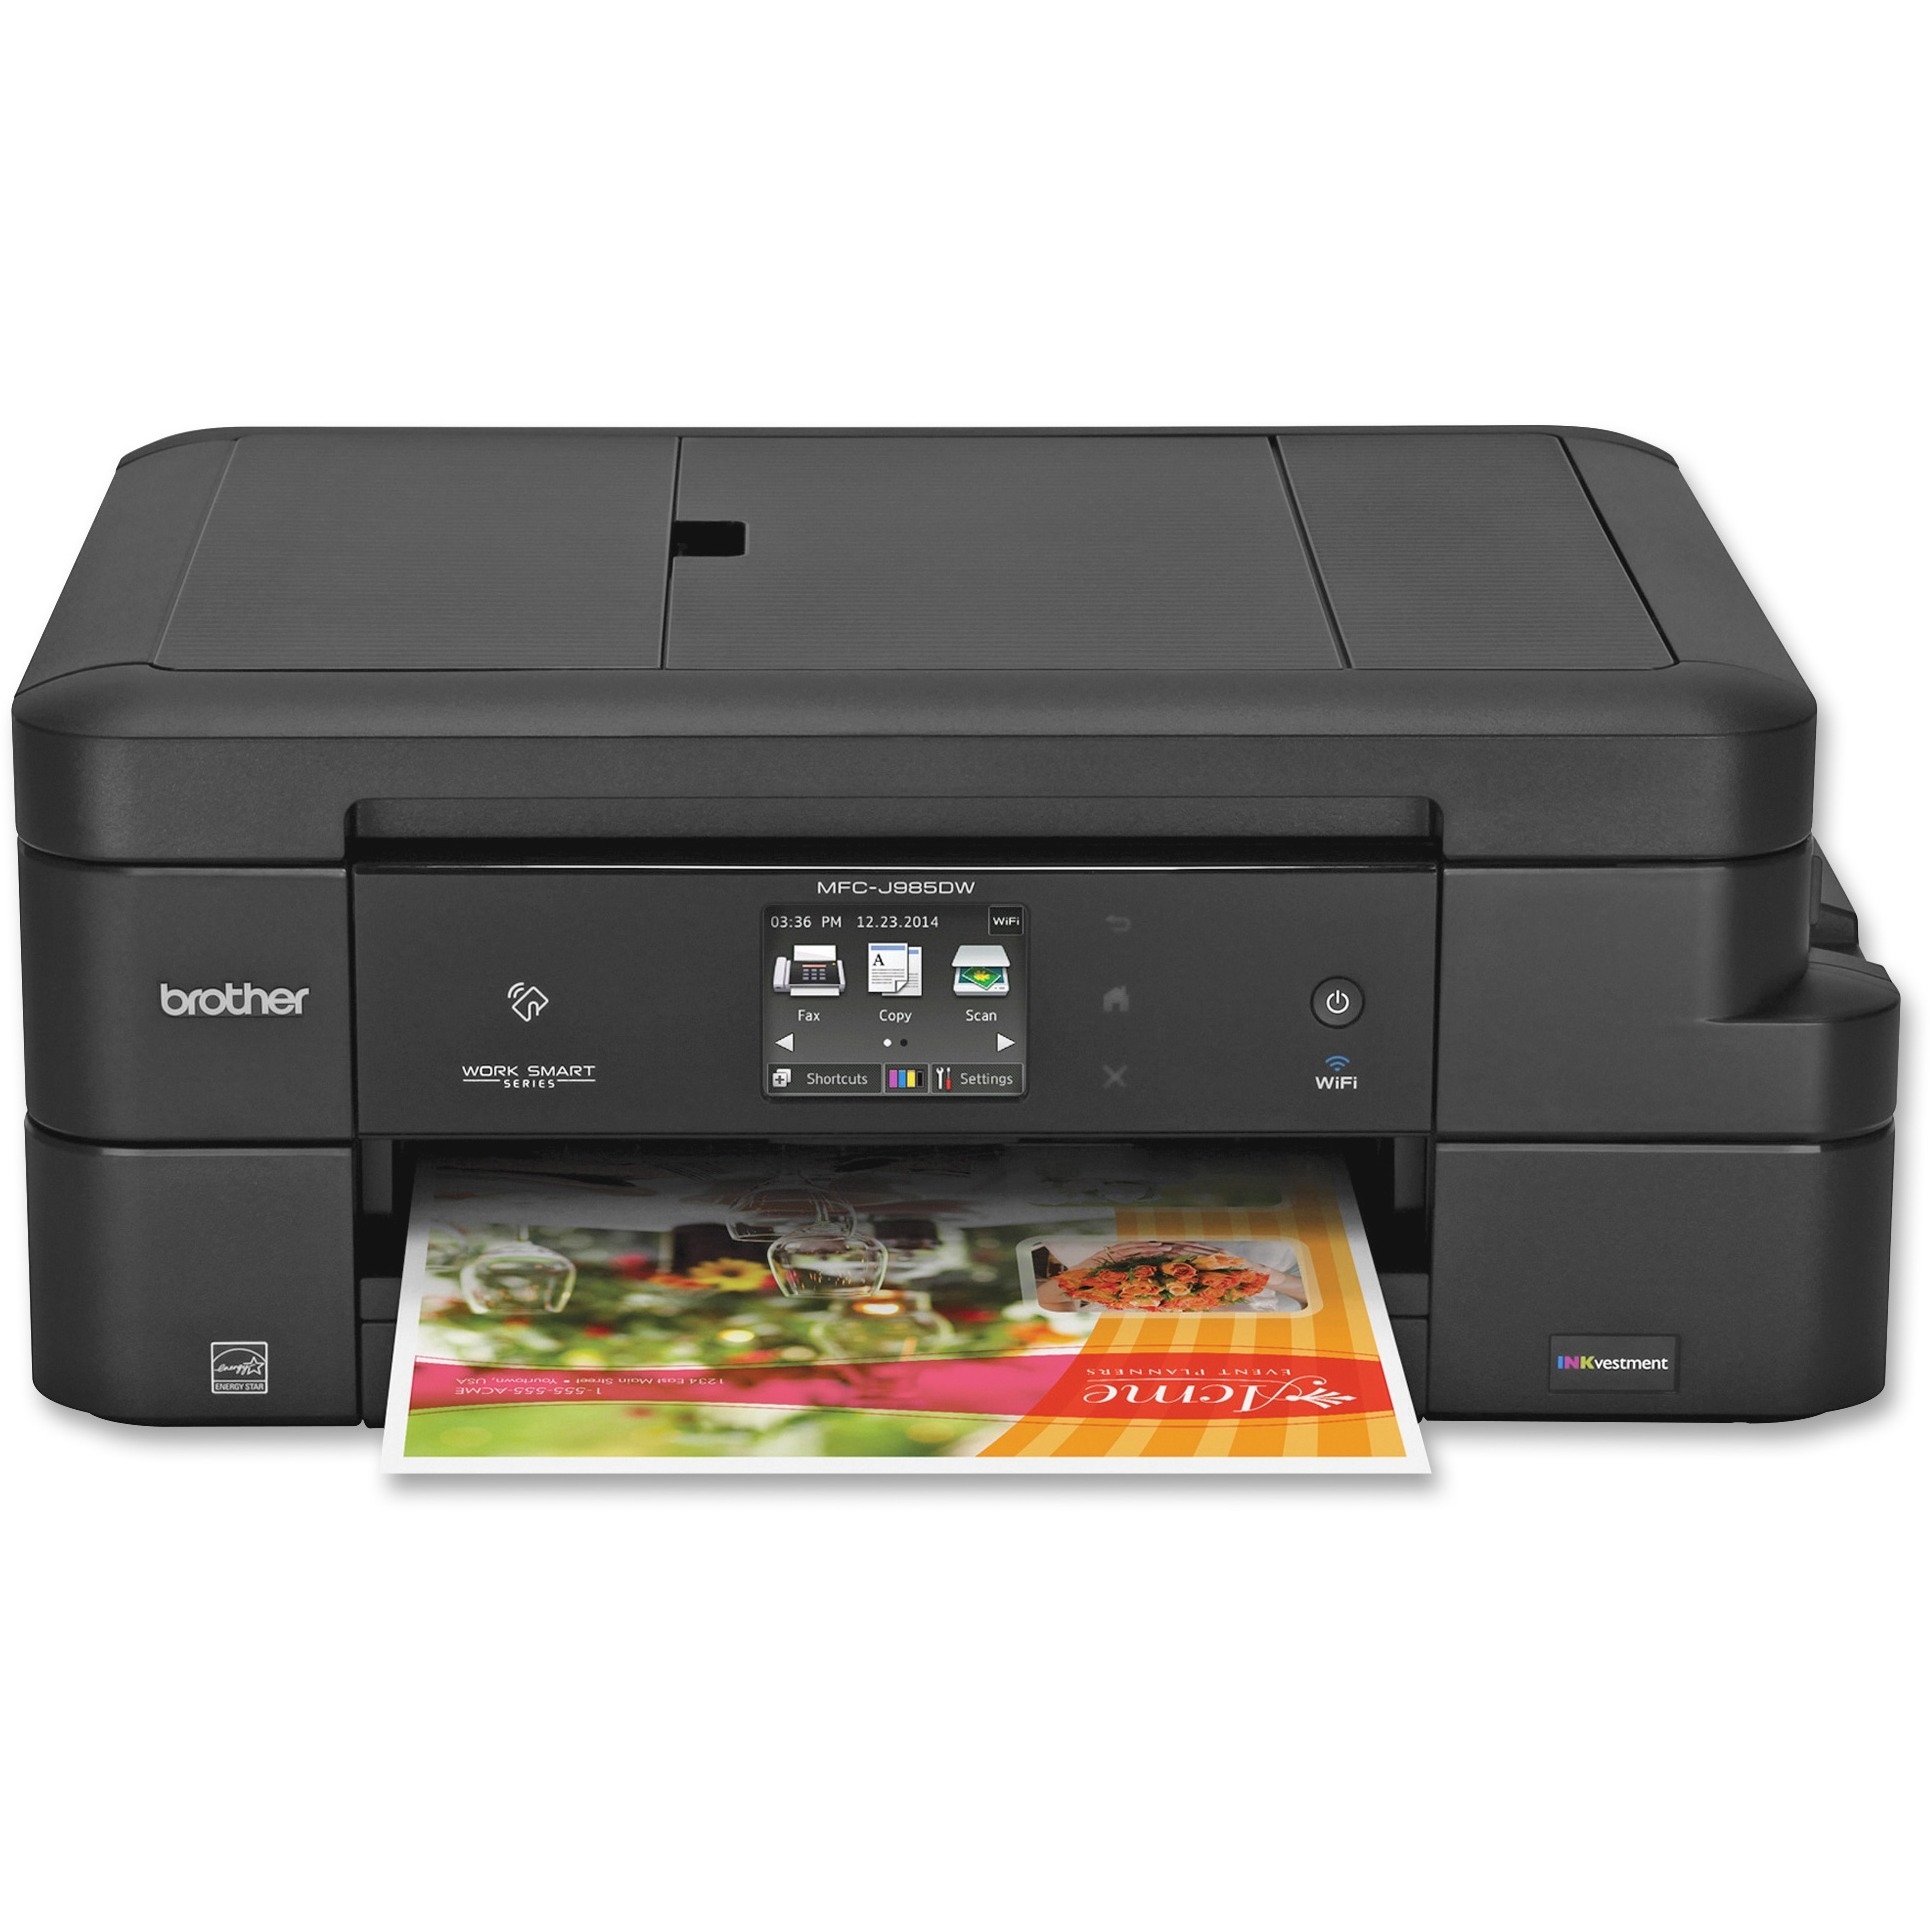 Brother Work Smart MFC-J985DW All-in-One Copy/Fax/Print/Scan with INKvestment Cartridges